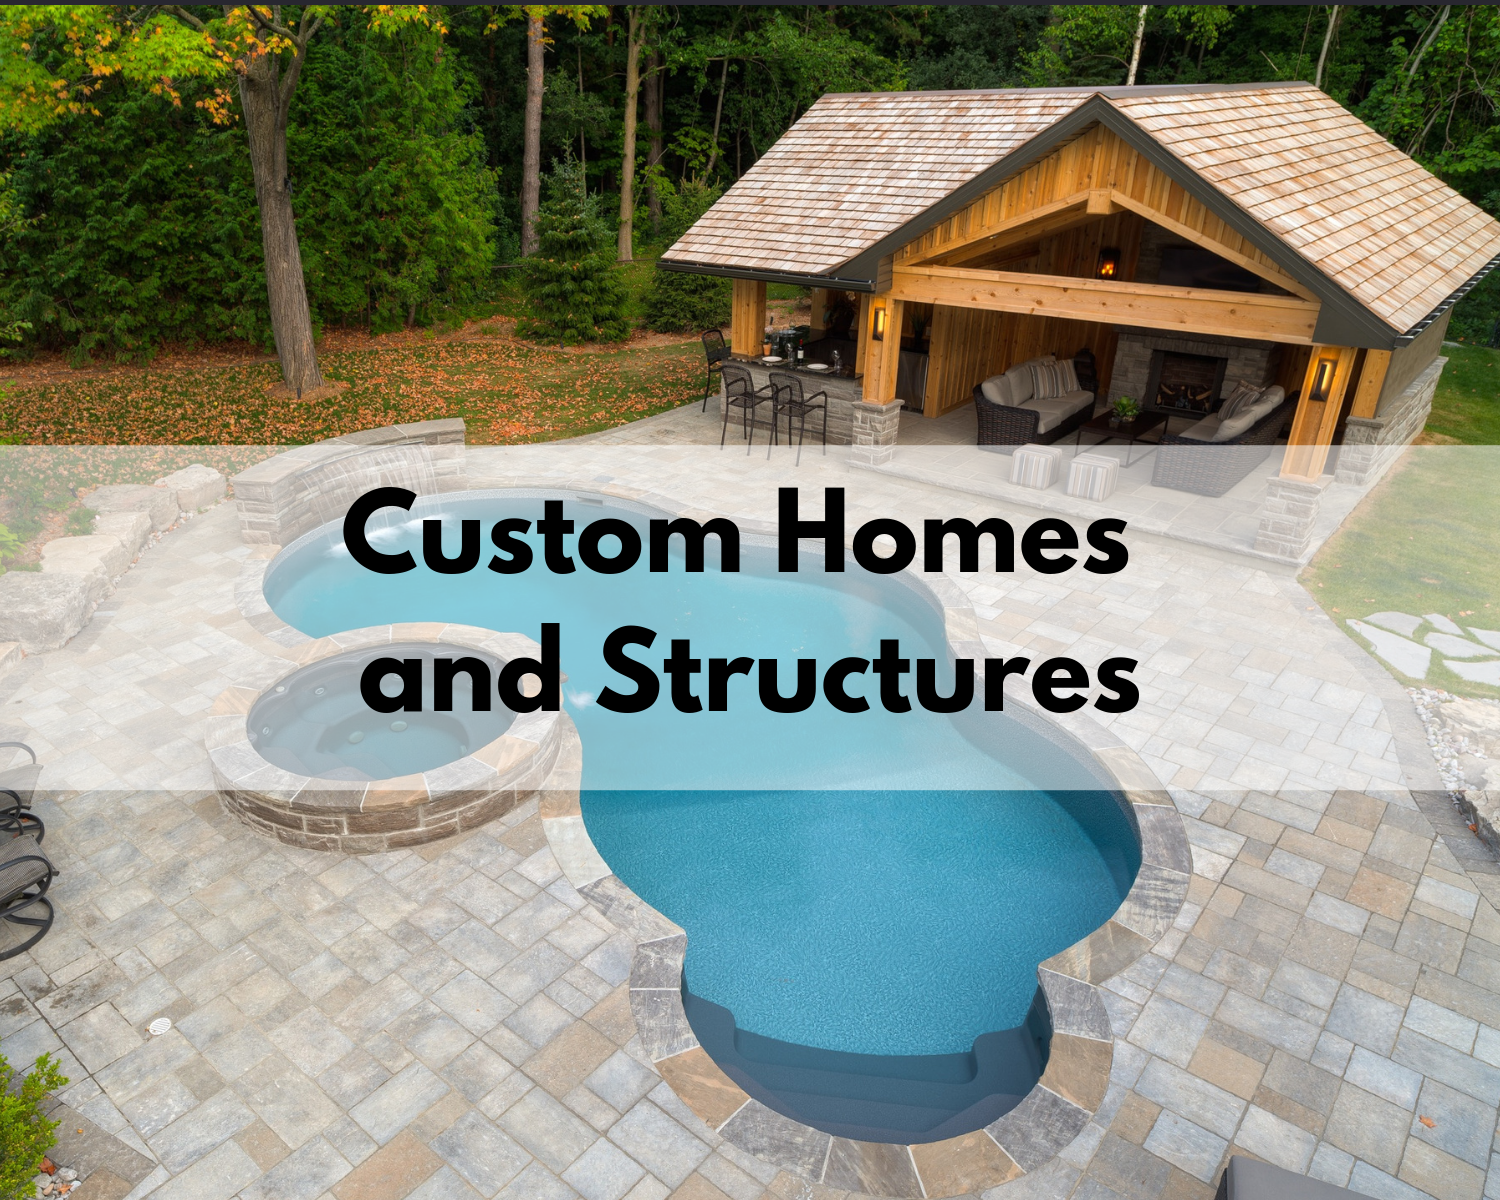 Custom Homes and Structures Cover .png